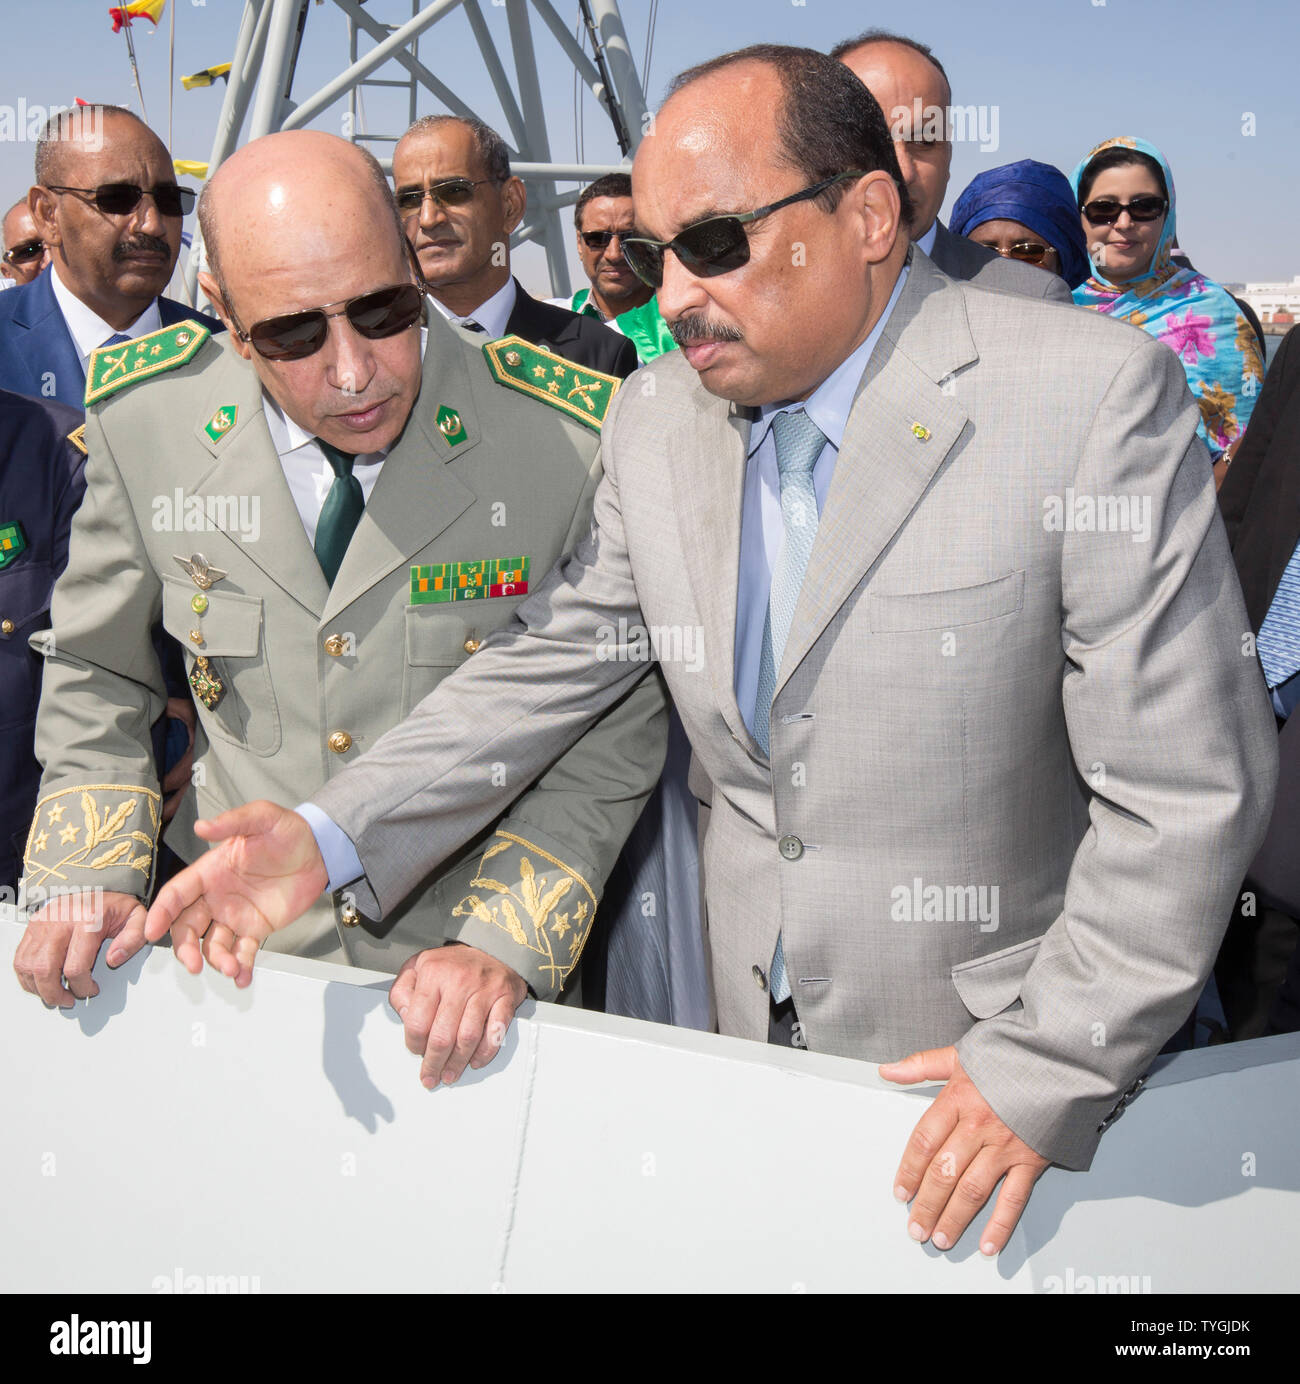 EX PRESIDENT OF MAURITANIA MOHAMED OULD ABDEL AZIZ AND NEW PRESIDENT MOHAMED OULD GHAZOUANI - Stock Image